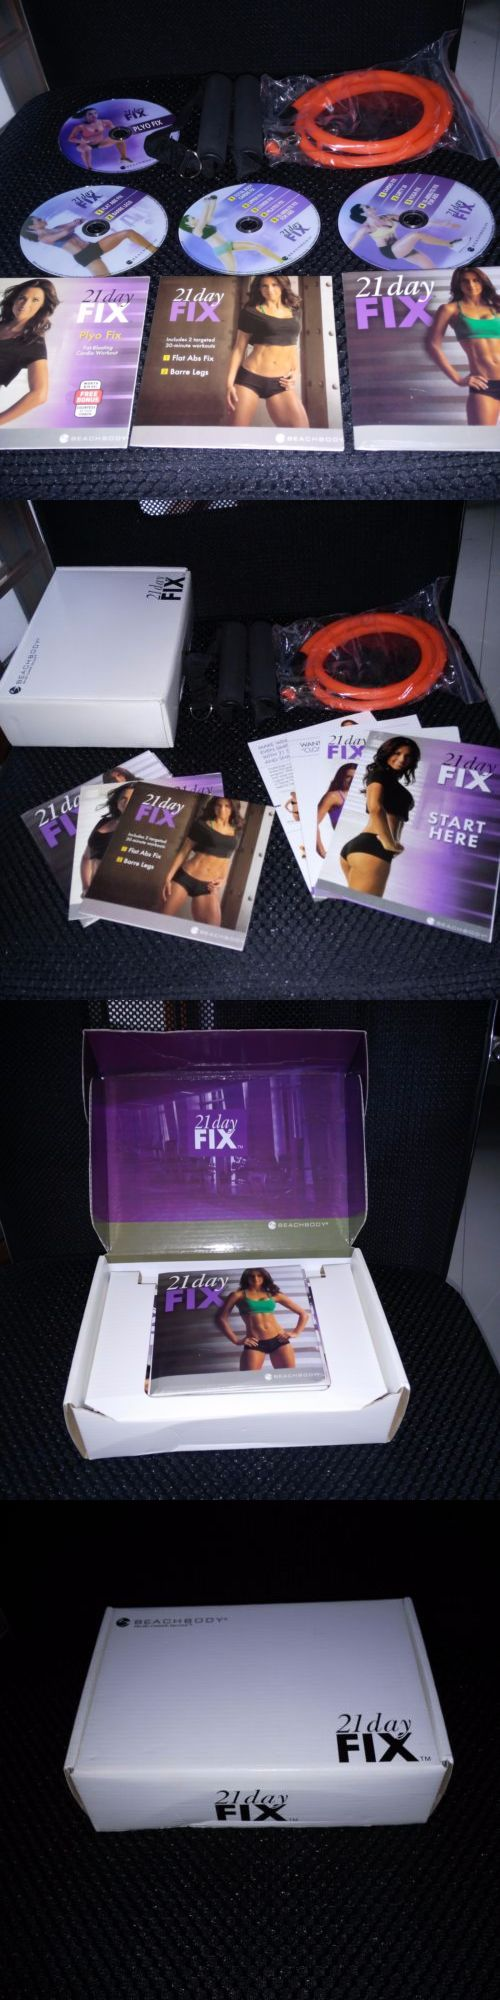 Fitness DVDs 109130: @21 Day Fix Extreme 4 Dvds Workouts Kit Eating Plan Guide Brand New Andsealed @! -> BUY IT NOW ONLY: $37.11 on eBay!